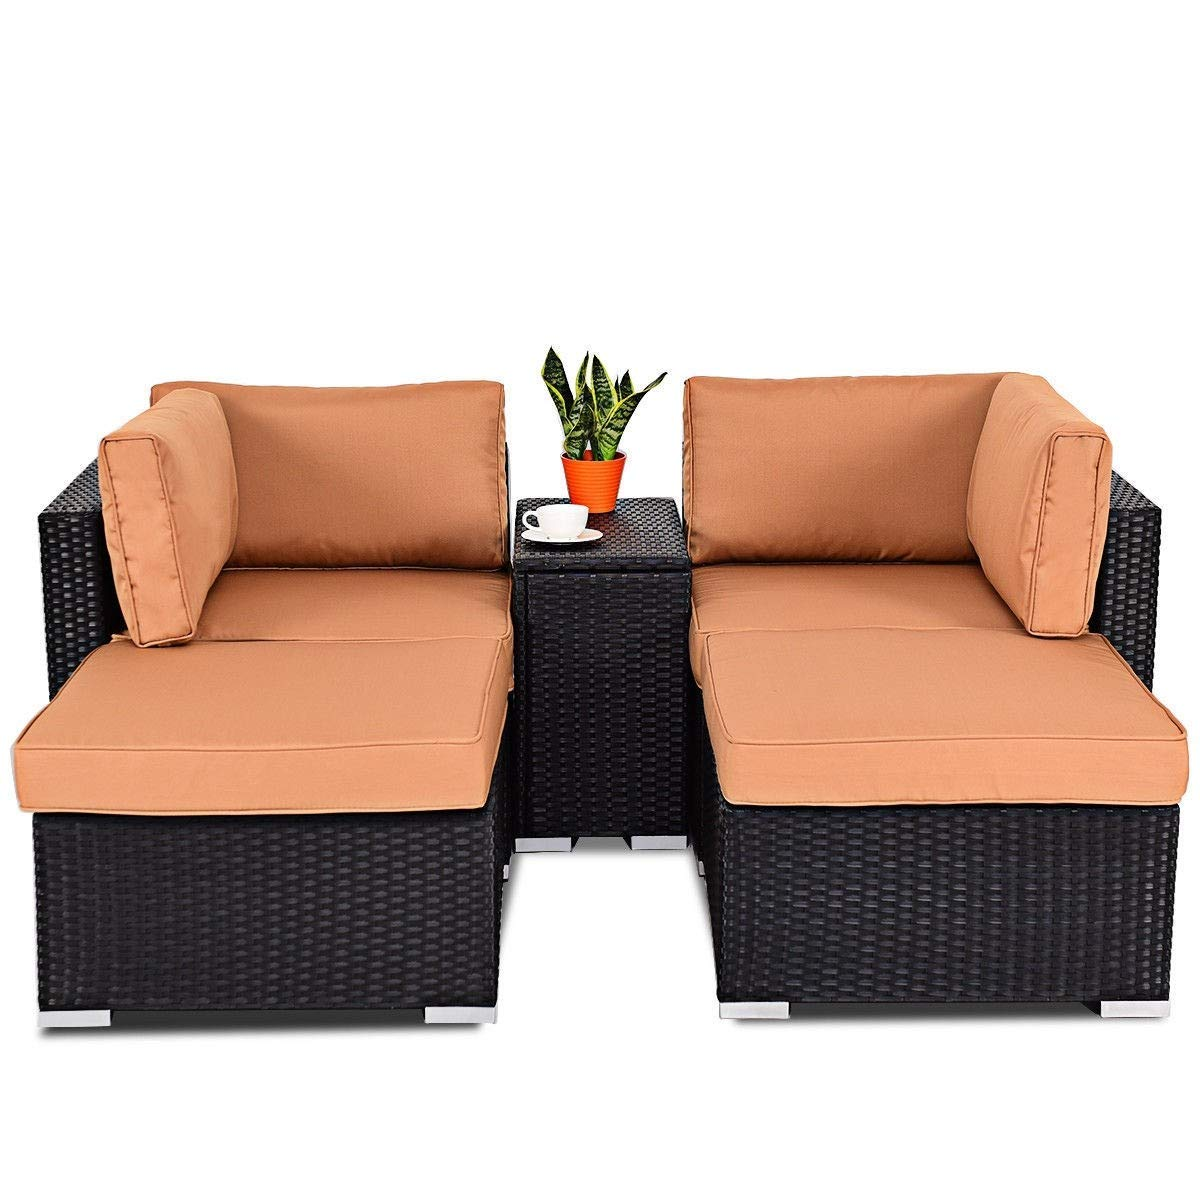 BeUniqueToday 5 pcs Outdoor/Indoor Wicker Sectional Chair Lounge Daybed Set, Made of Rattan Material and Steel Frame, Light to Portable